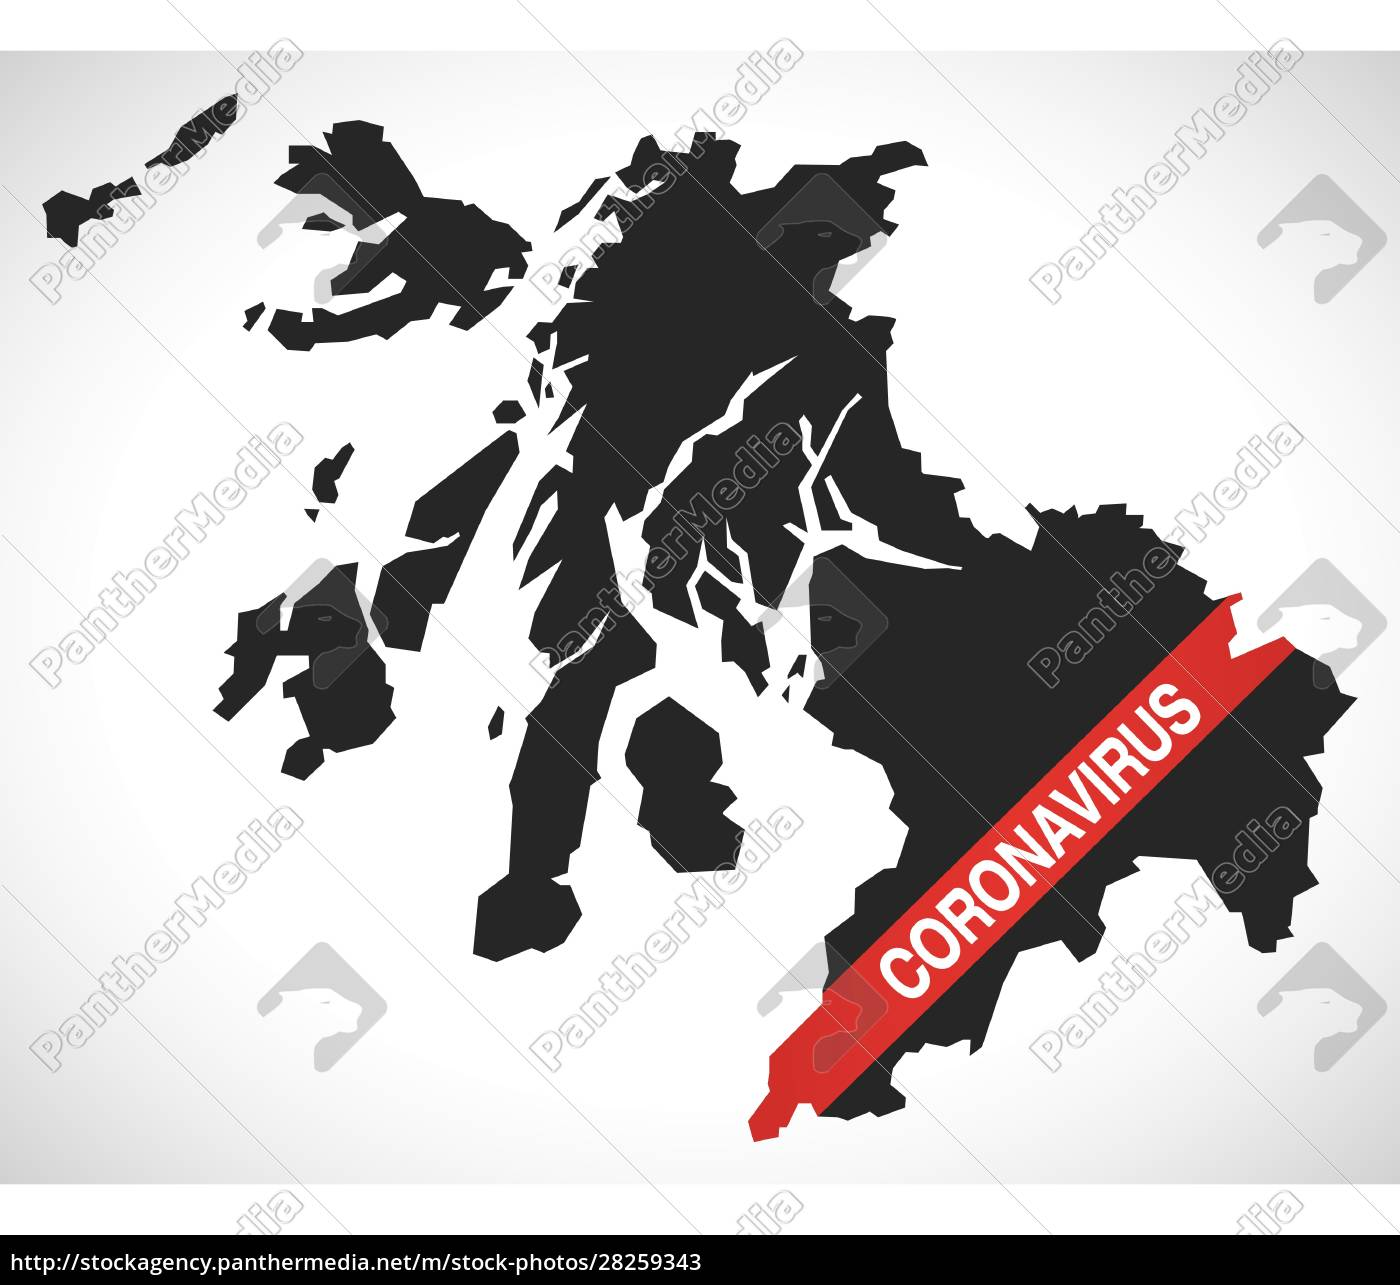 strathclyde, scotland, uk, region, map, with - 28259343